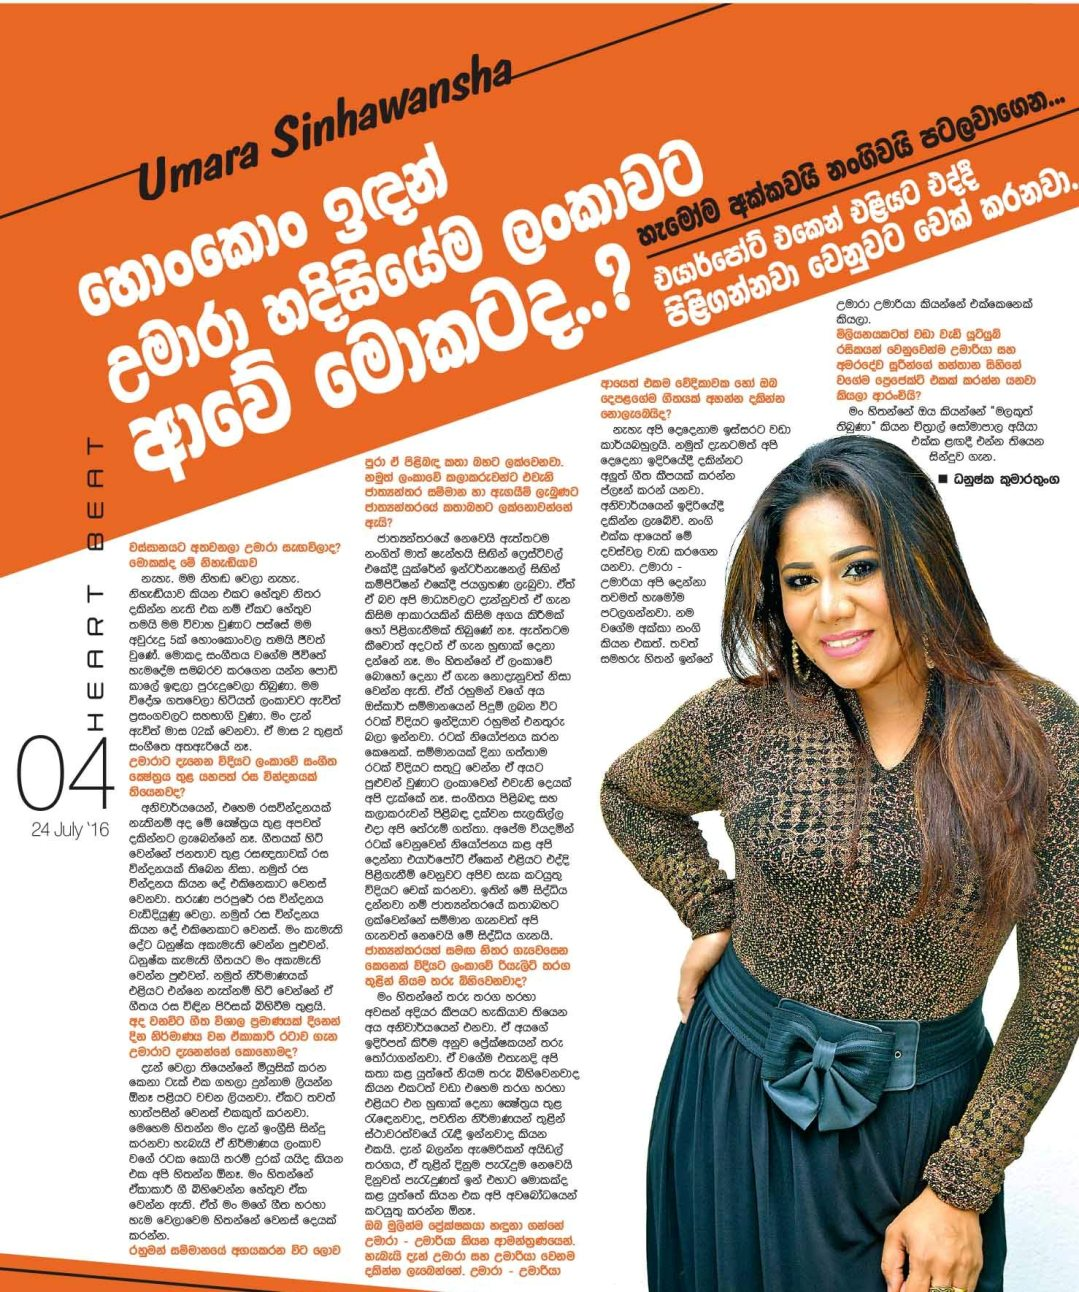 Gossip Chat with Umara Sinhawansa